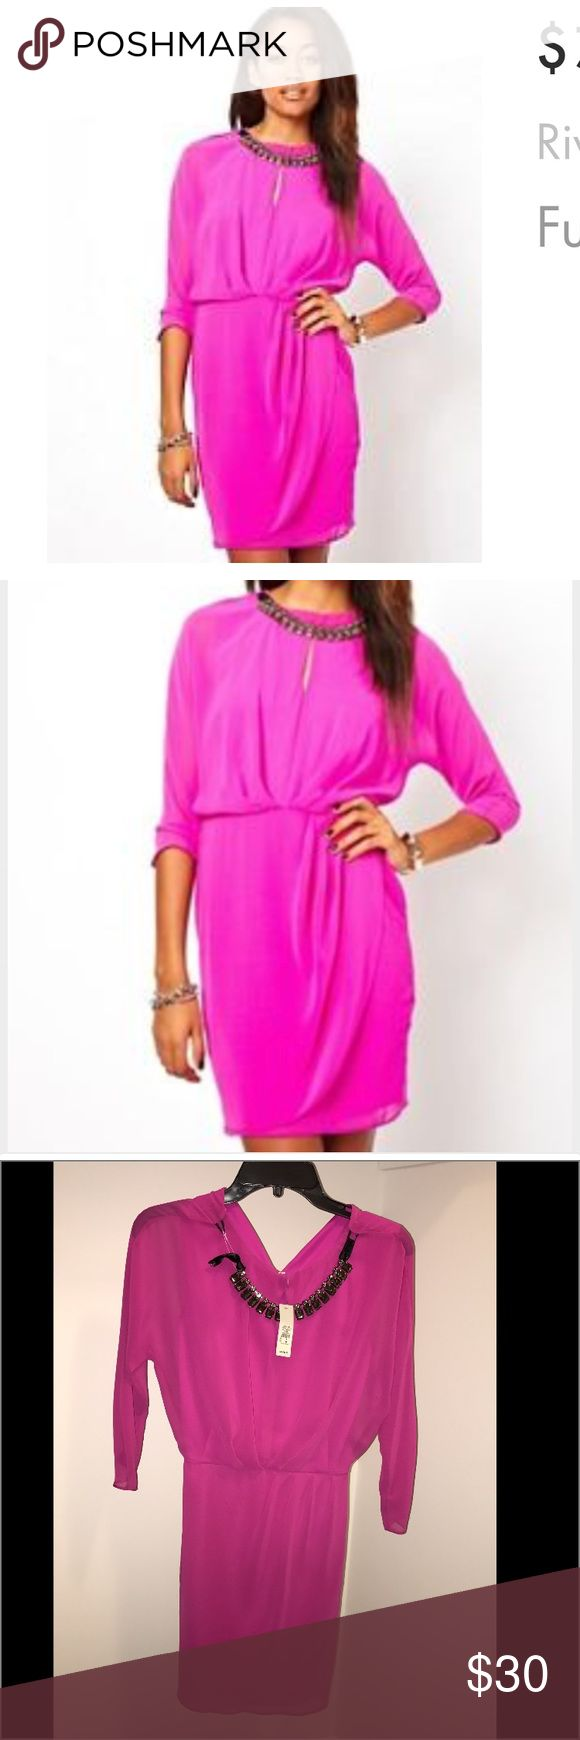 NWT River island jewel neck tulip dress sz UK8/US4 NWT River island jewel neck tulip dress. Fuchsia/pink in color. Comes with attached jewel statement necklace piece that is detachable. Brand new, never worn! Perfect for spring!🌷  size UK8 / US4  long sleeve but light weight. River Island Dresses